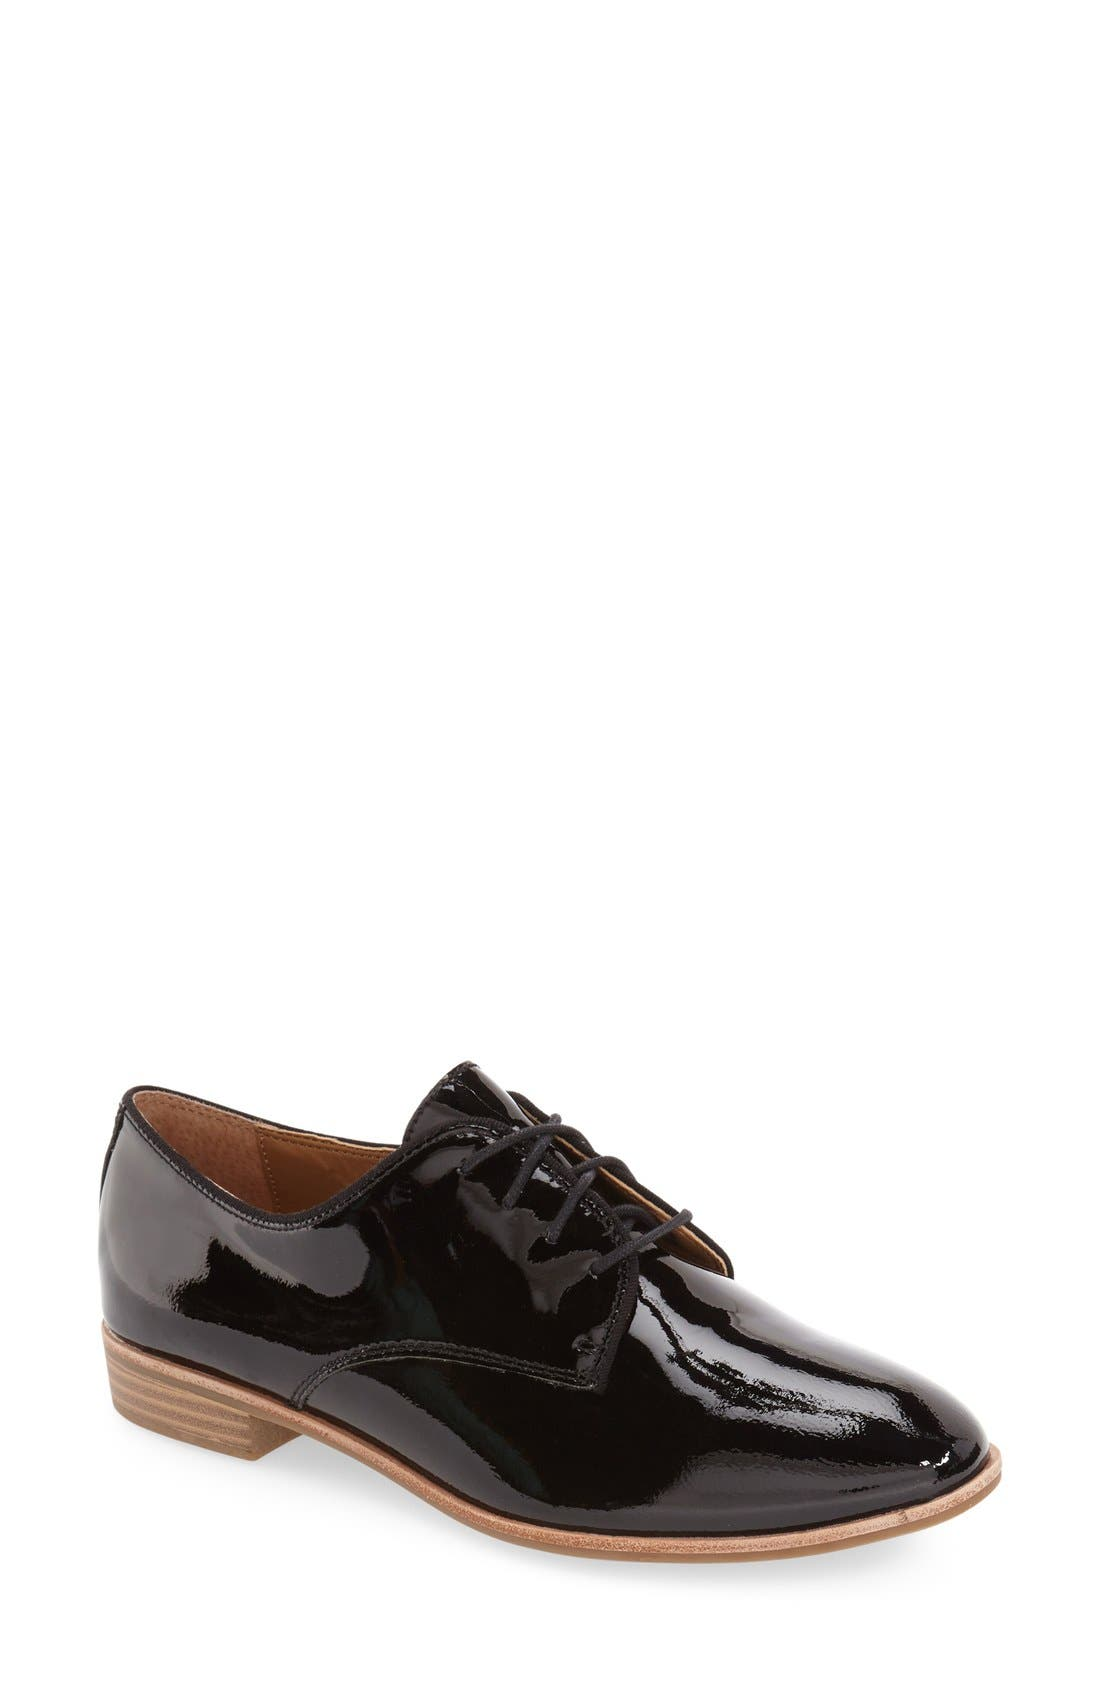 'Ella' Leather Oxford,                             Main thumbnail 1, color,                             001